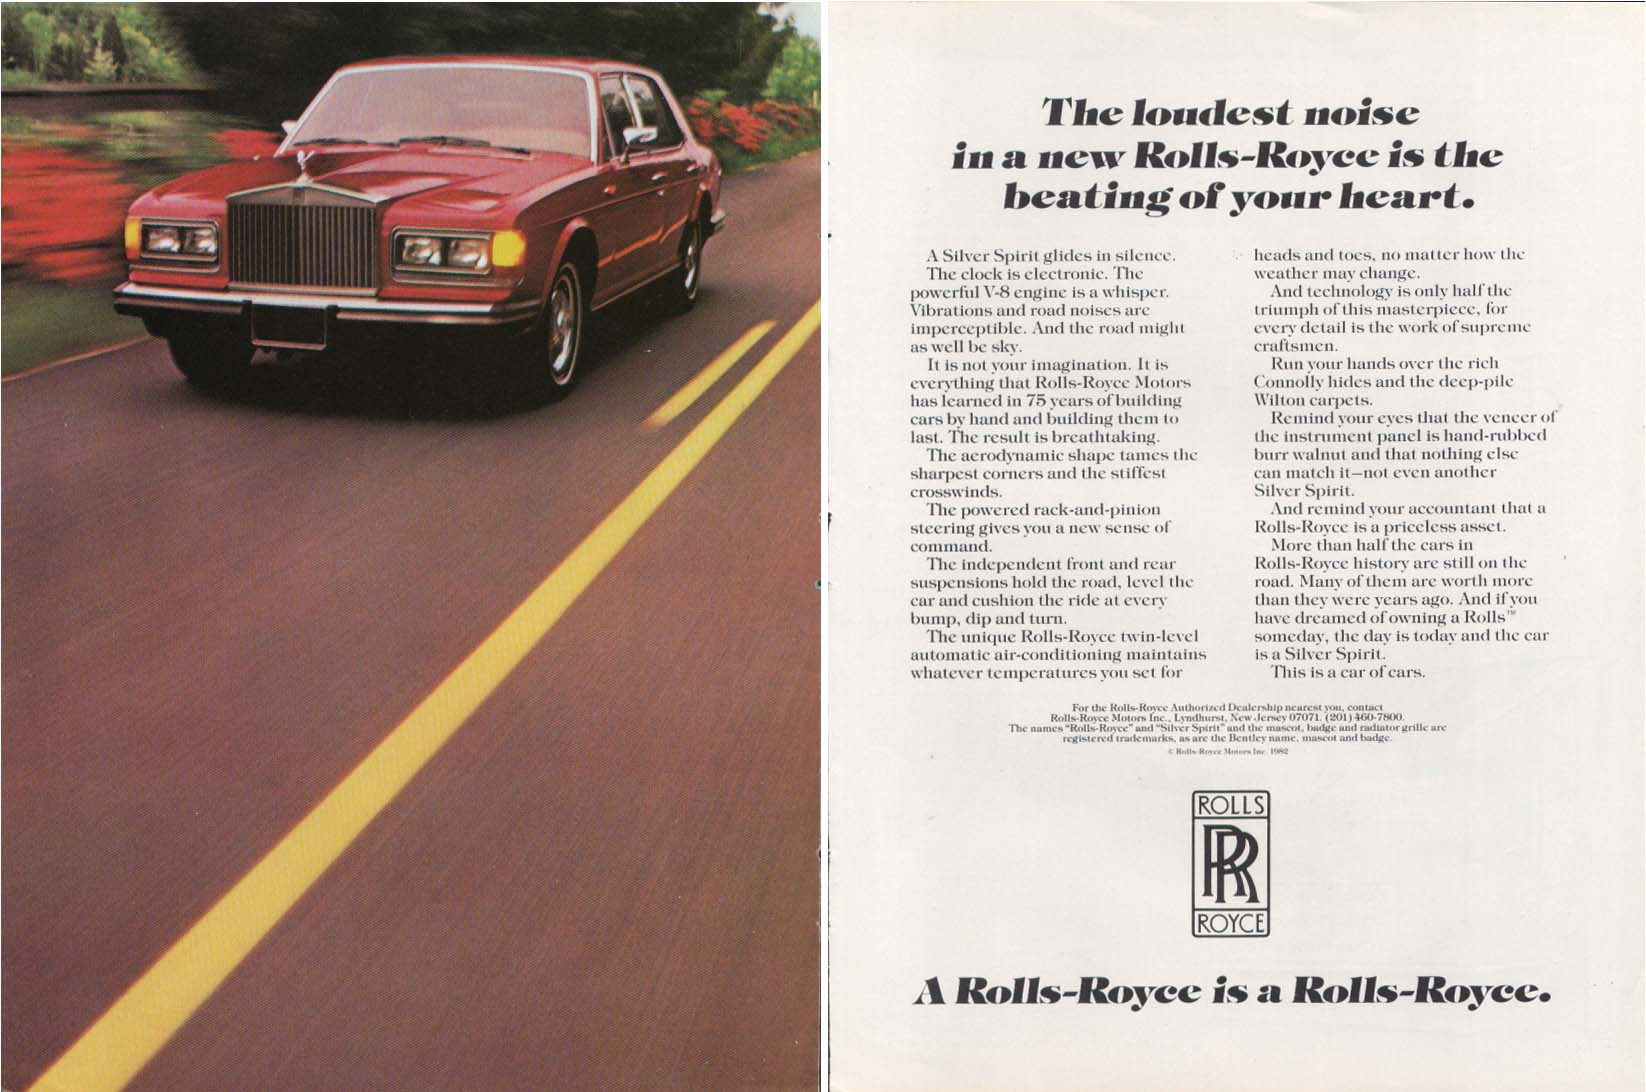 Image for The loudest noise is the beating of your heart Rolls-Royce ad 1982